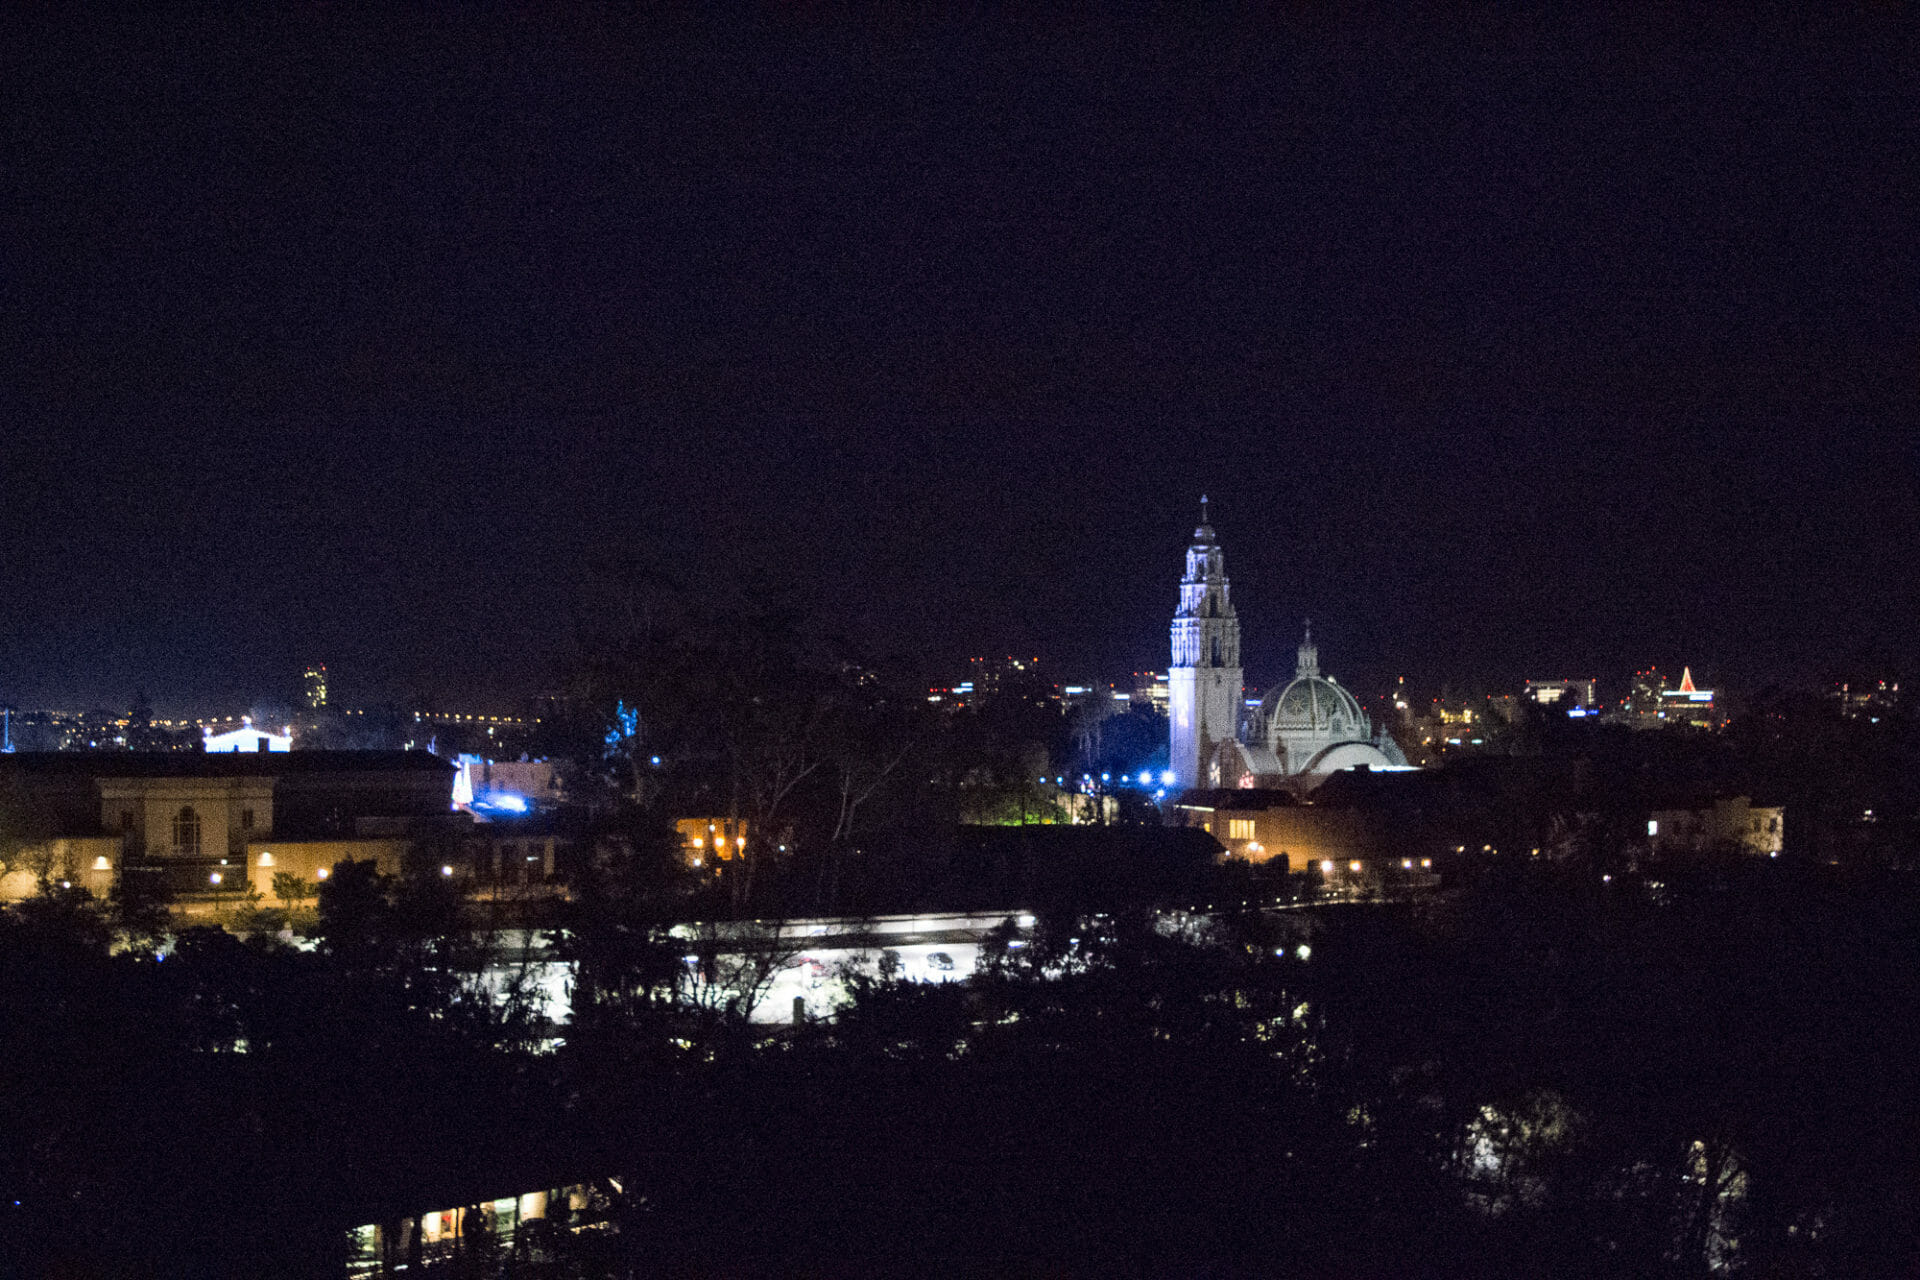 San Diego at night from the zoo's Skyfari during Jungle Bells! What a fab view!